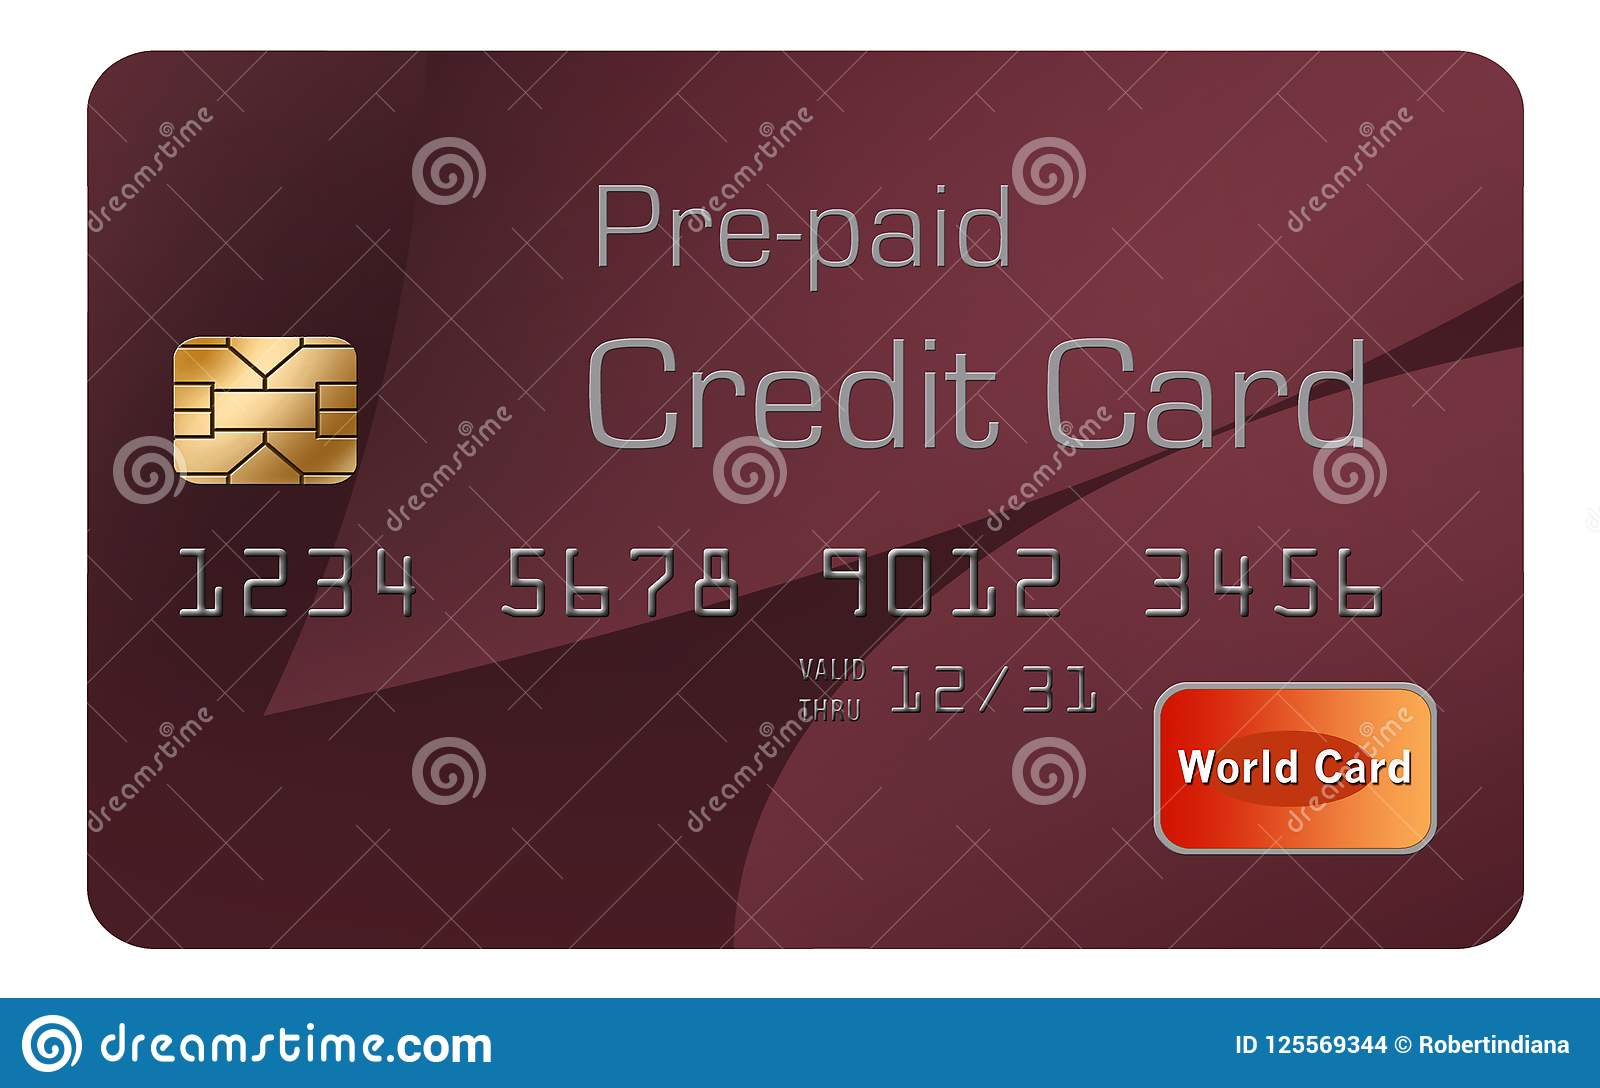 Prepaid Credit Card >> This Is A Prepaid Credit Card Collateralized Credit Card